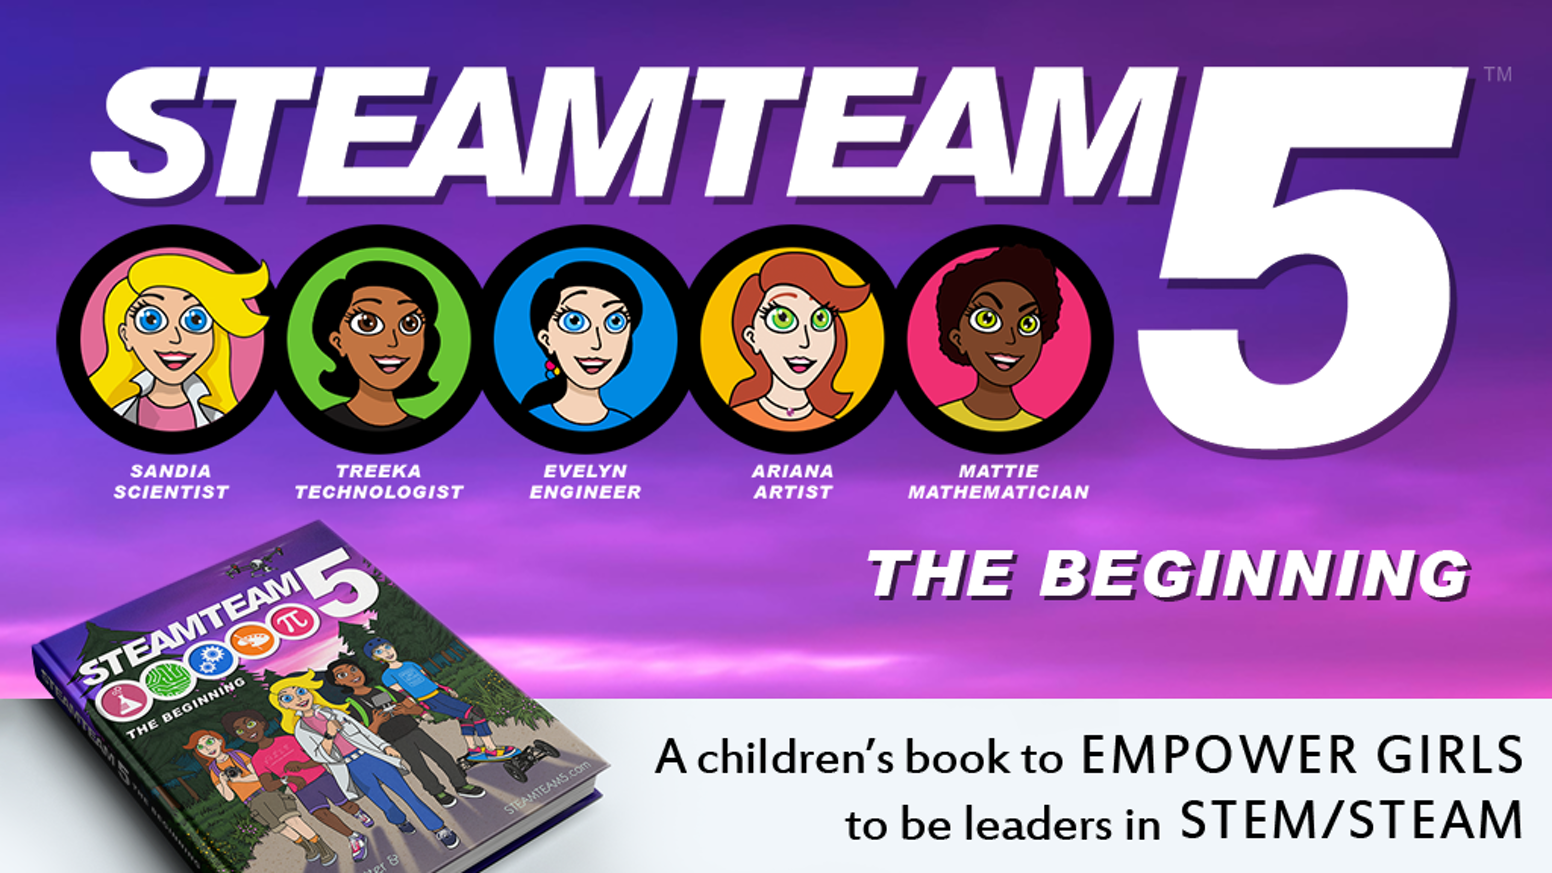 A children's book about five amazing girls who use science, technology, engineering, art, and math to do amazing things.